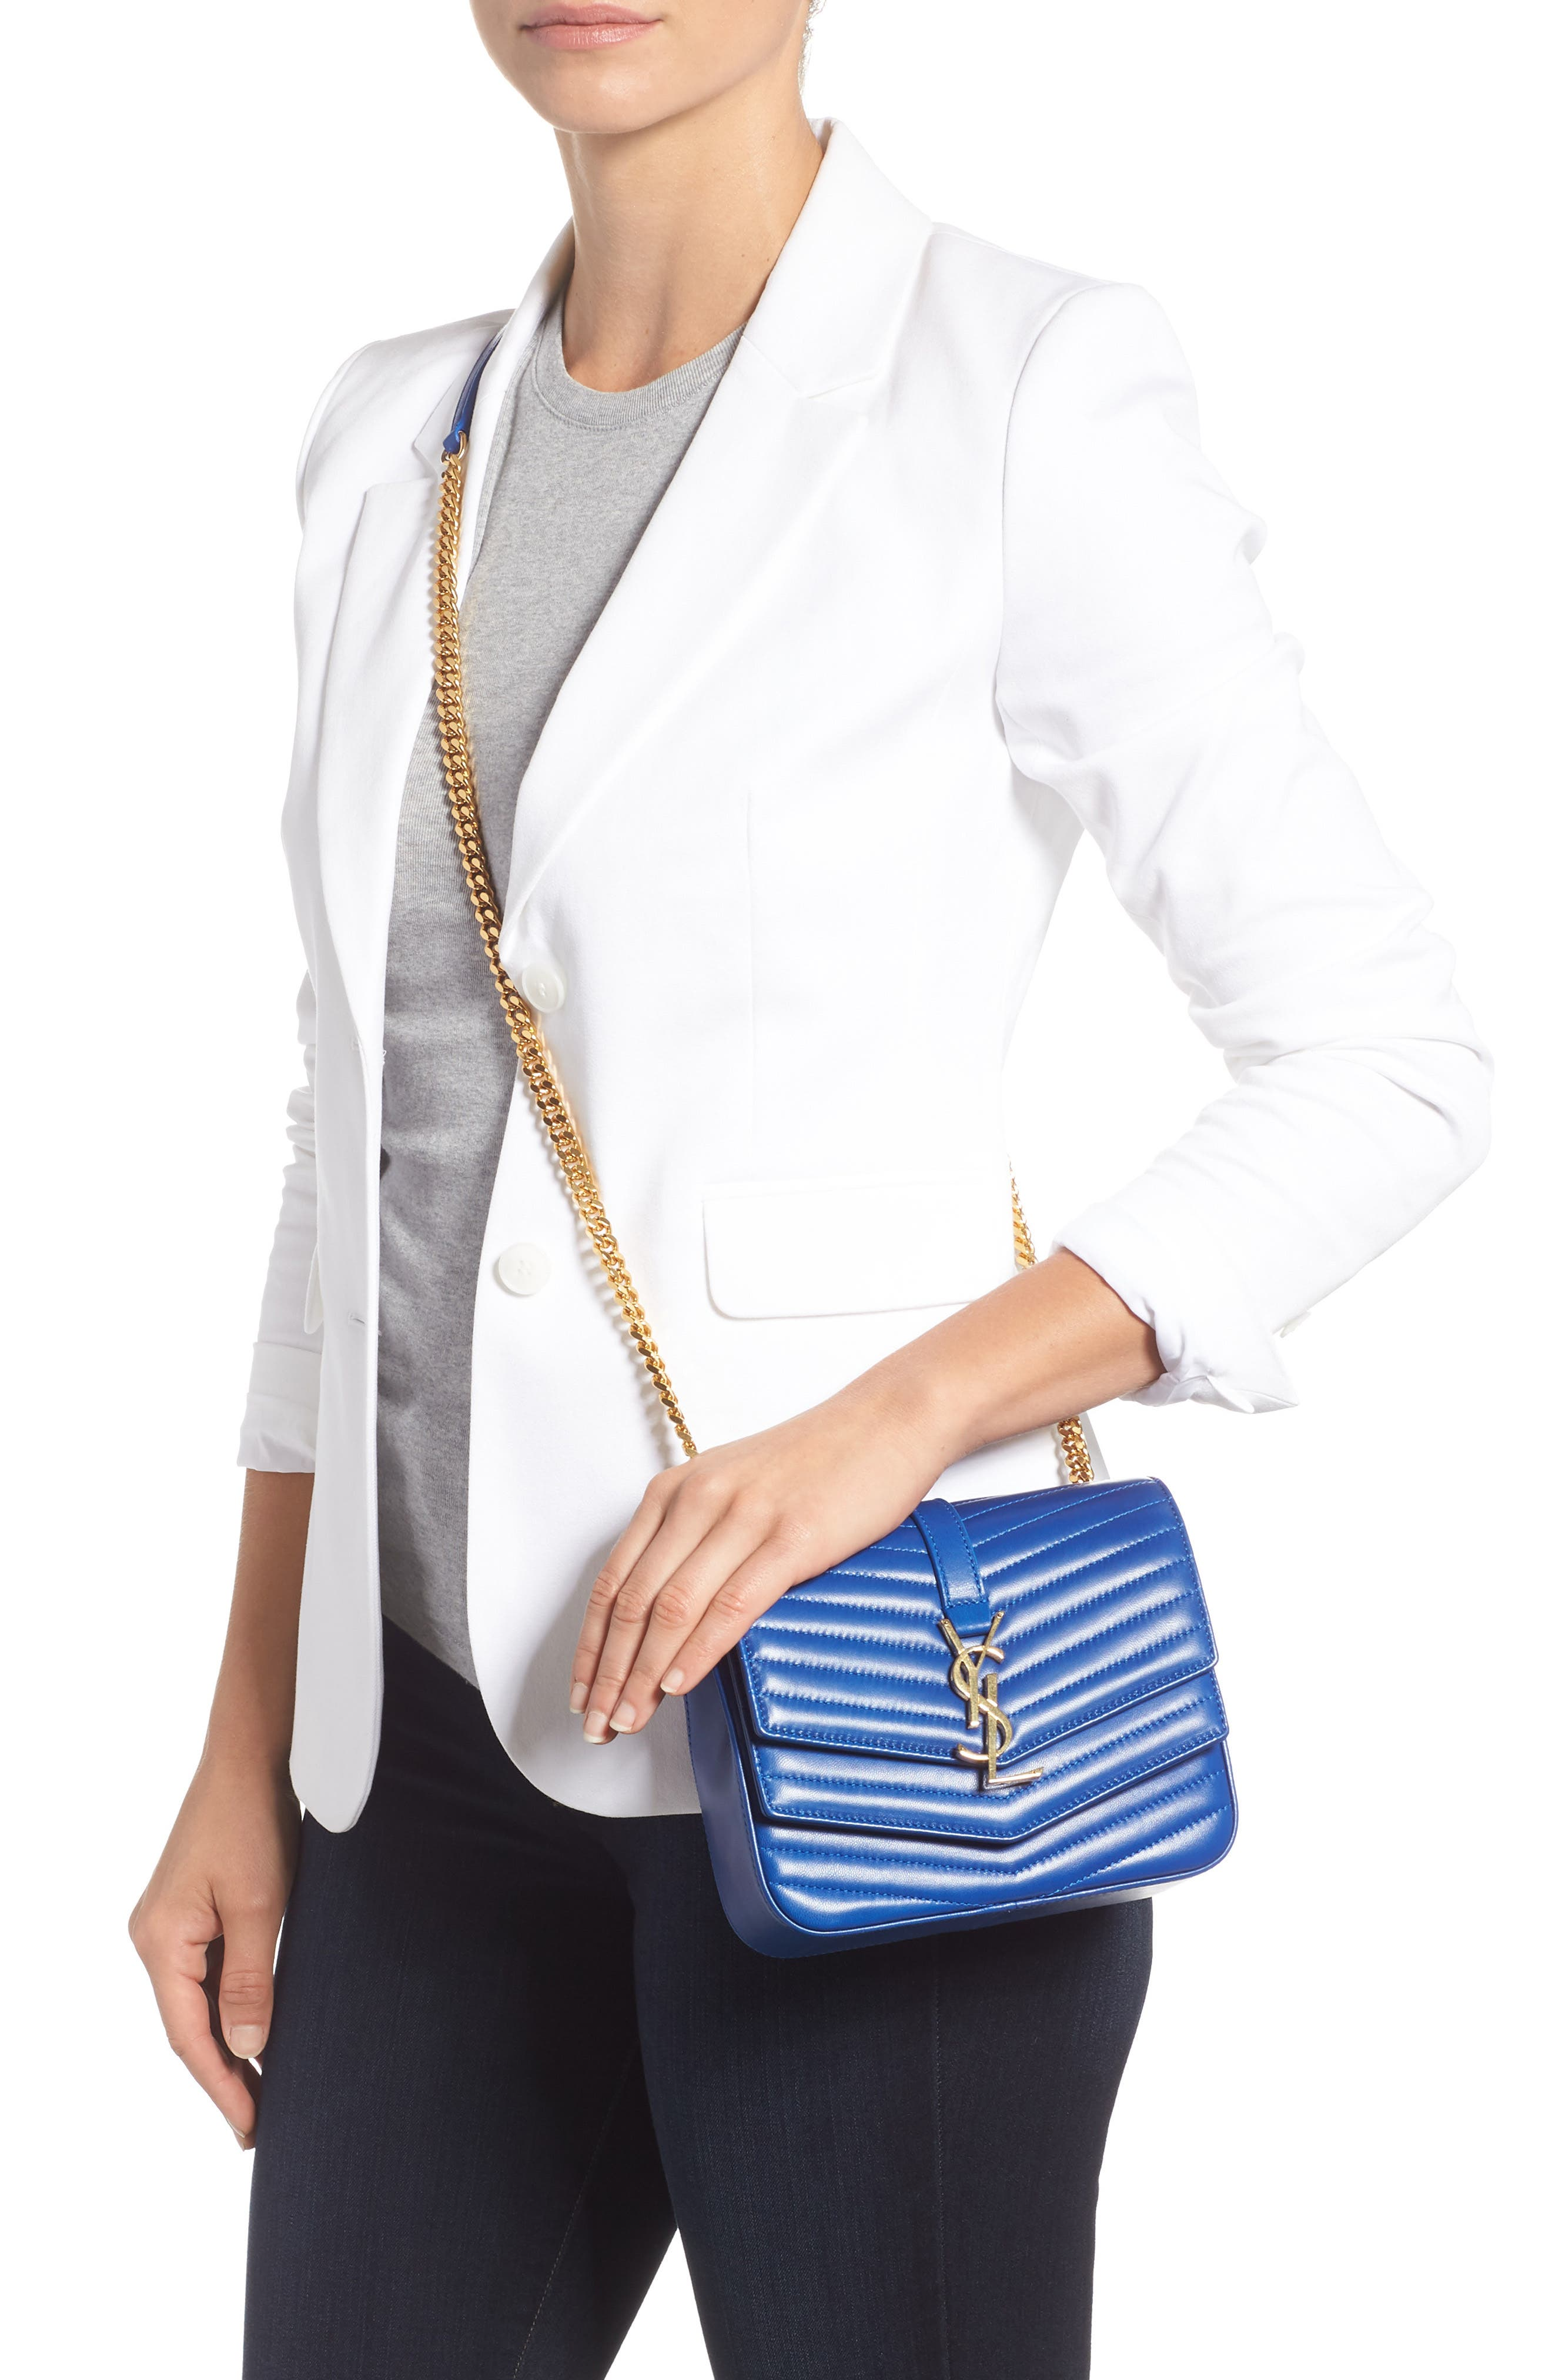 Montaigne Quilted Lambskin Crossbody Bag,                             Alternate thumbnail 2, color,                             BRIGHT BLUE